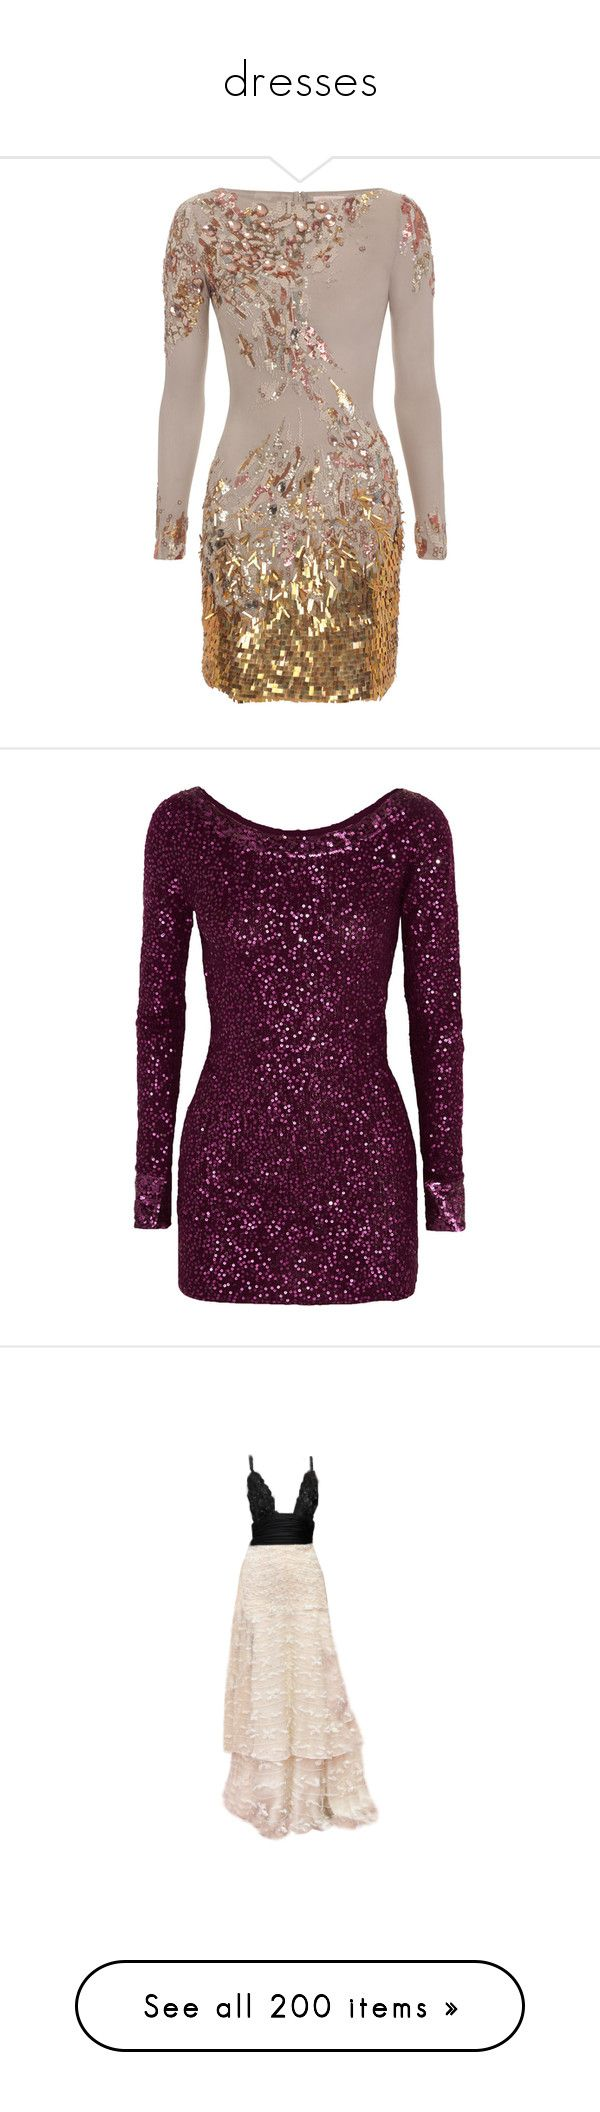 """""""dresses"""" by anninhaelisaa ❤ liked on Polyvore featuring dresses, vestidos, short dresses, robes, short sequin cocktail dresses, sequin cocktail dresses, short sequin dress, sequin mini dress, long sleeve cocktail dresses and tops"""